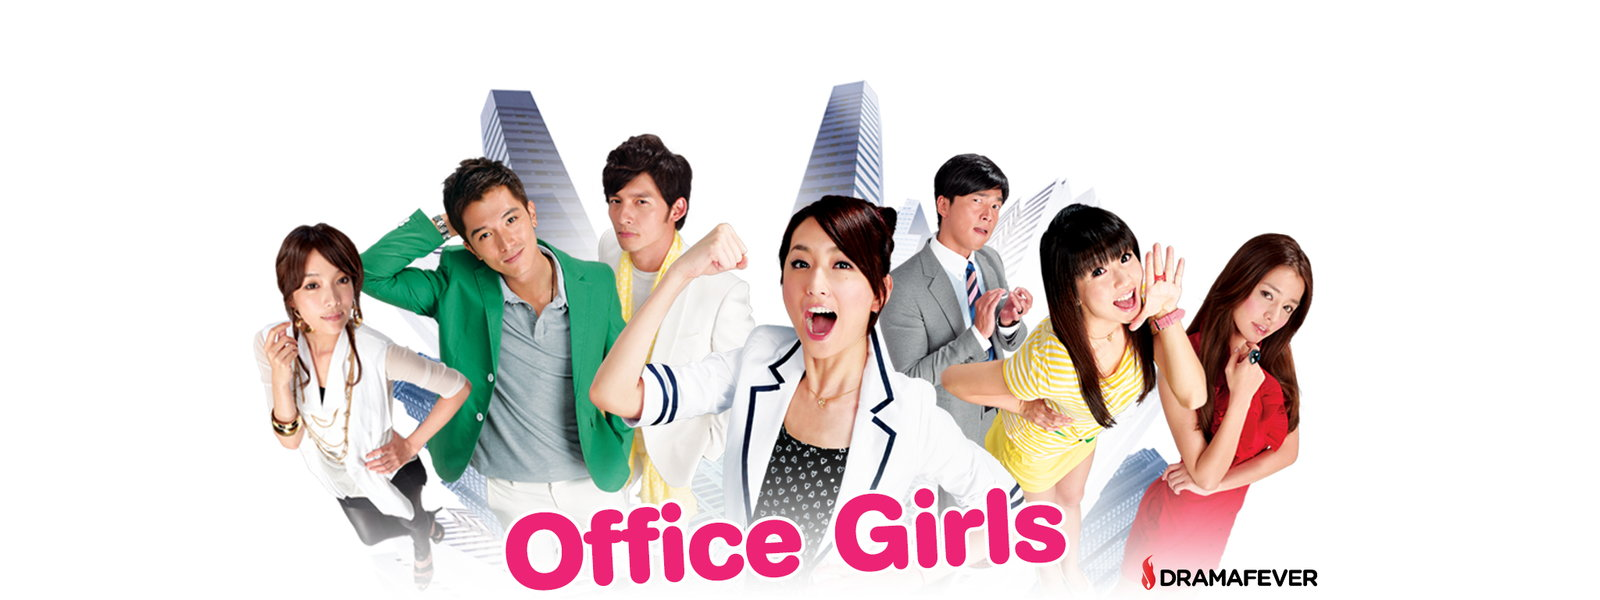 office girls | hulu